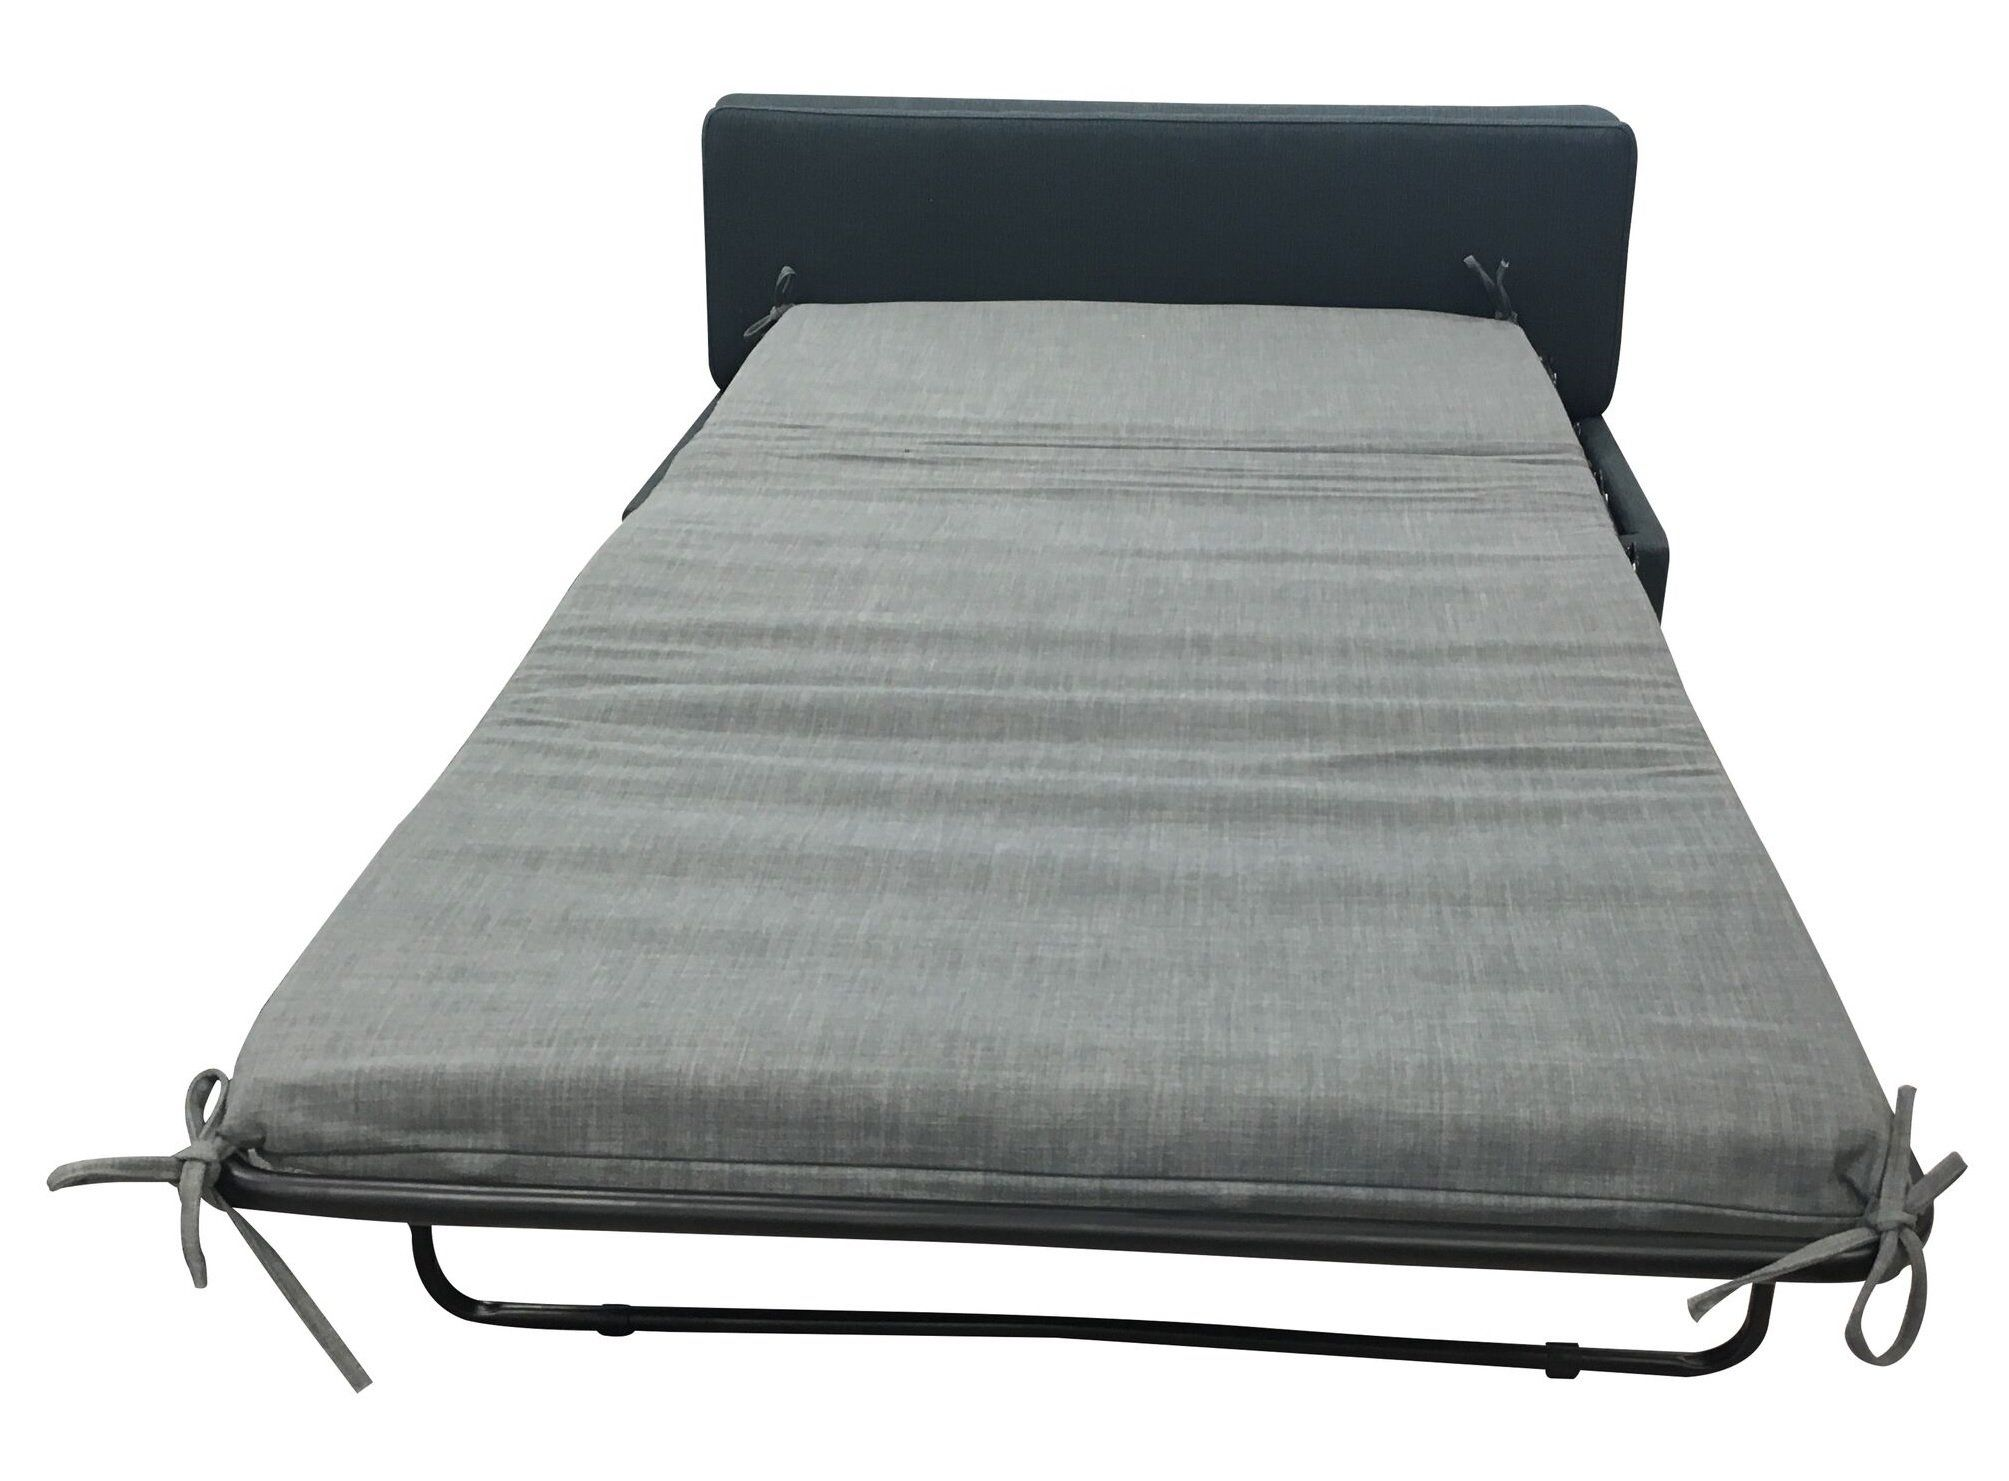 Iris ottoman with fold out single bed in sky charcoal